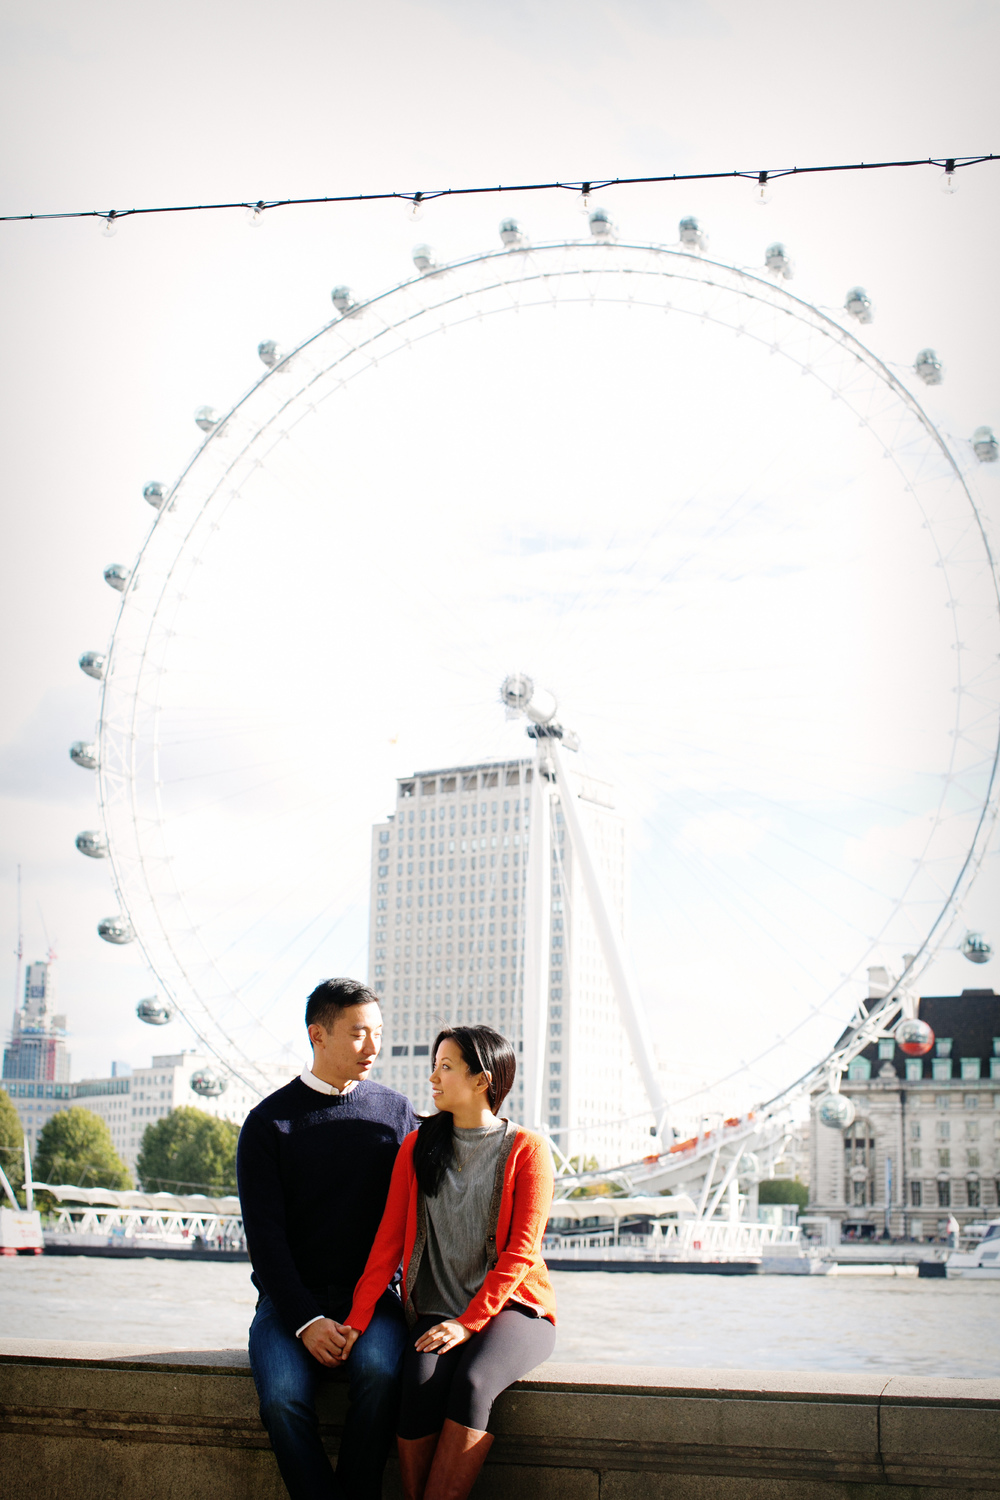 Flytographer | London Vacation Photographer - 11